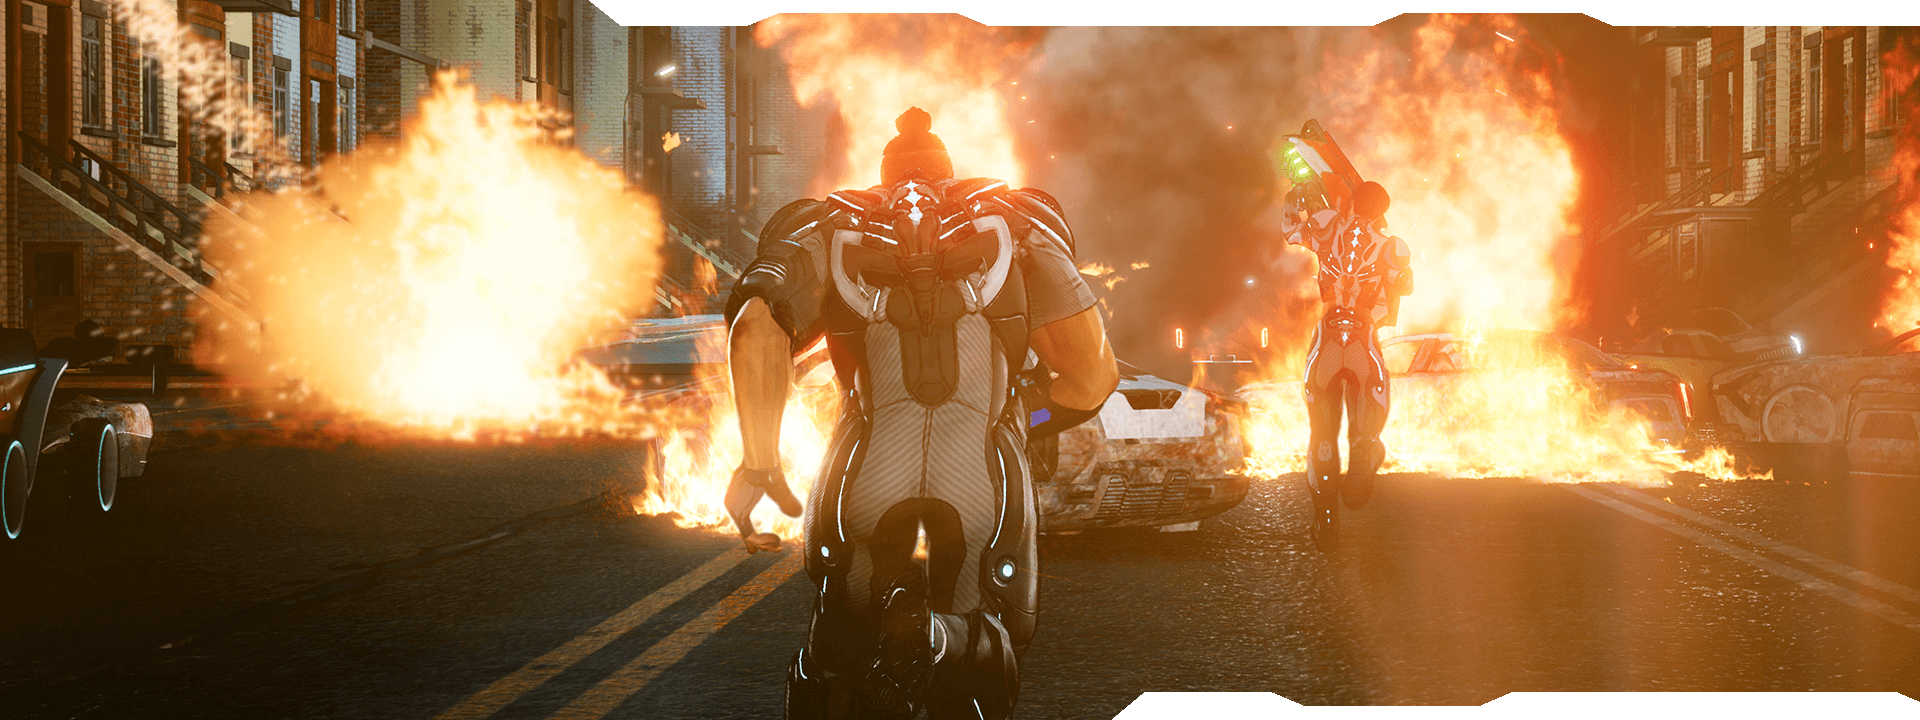 Characters running through a neighbourhood street with burning vehicles